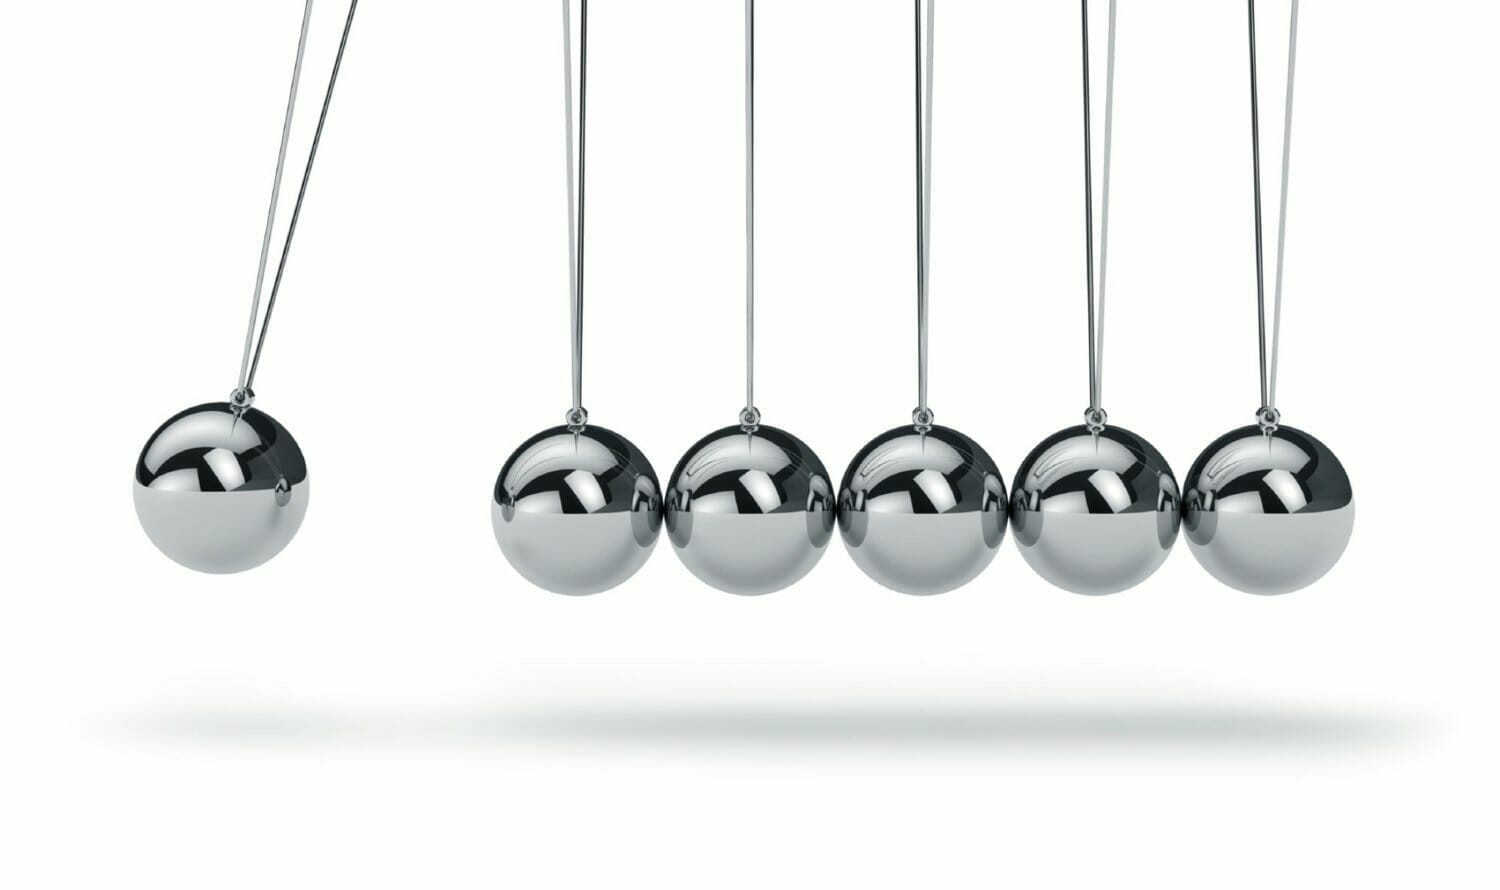 Newton's cradle, with the first ball swinging